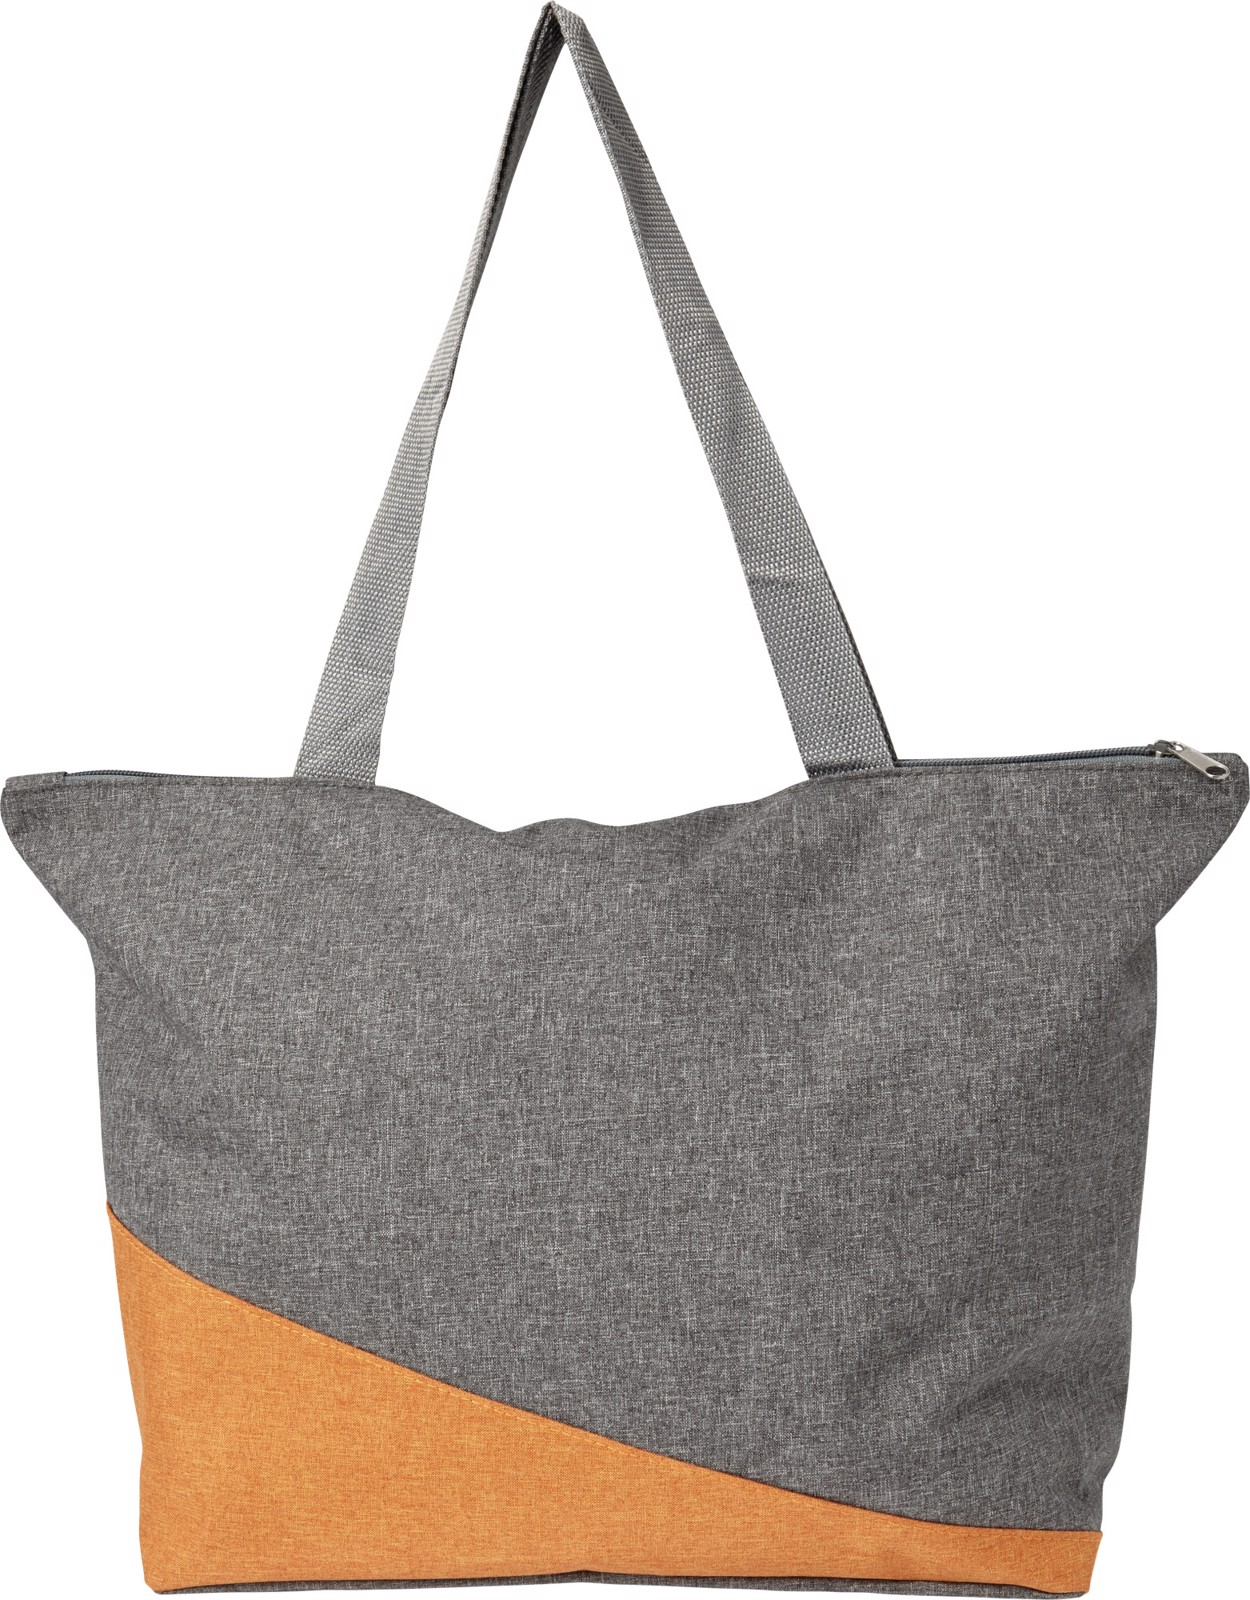 Polycanvas (300D) shopping bag - Orange